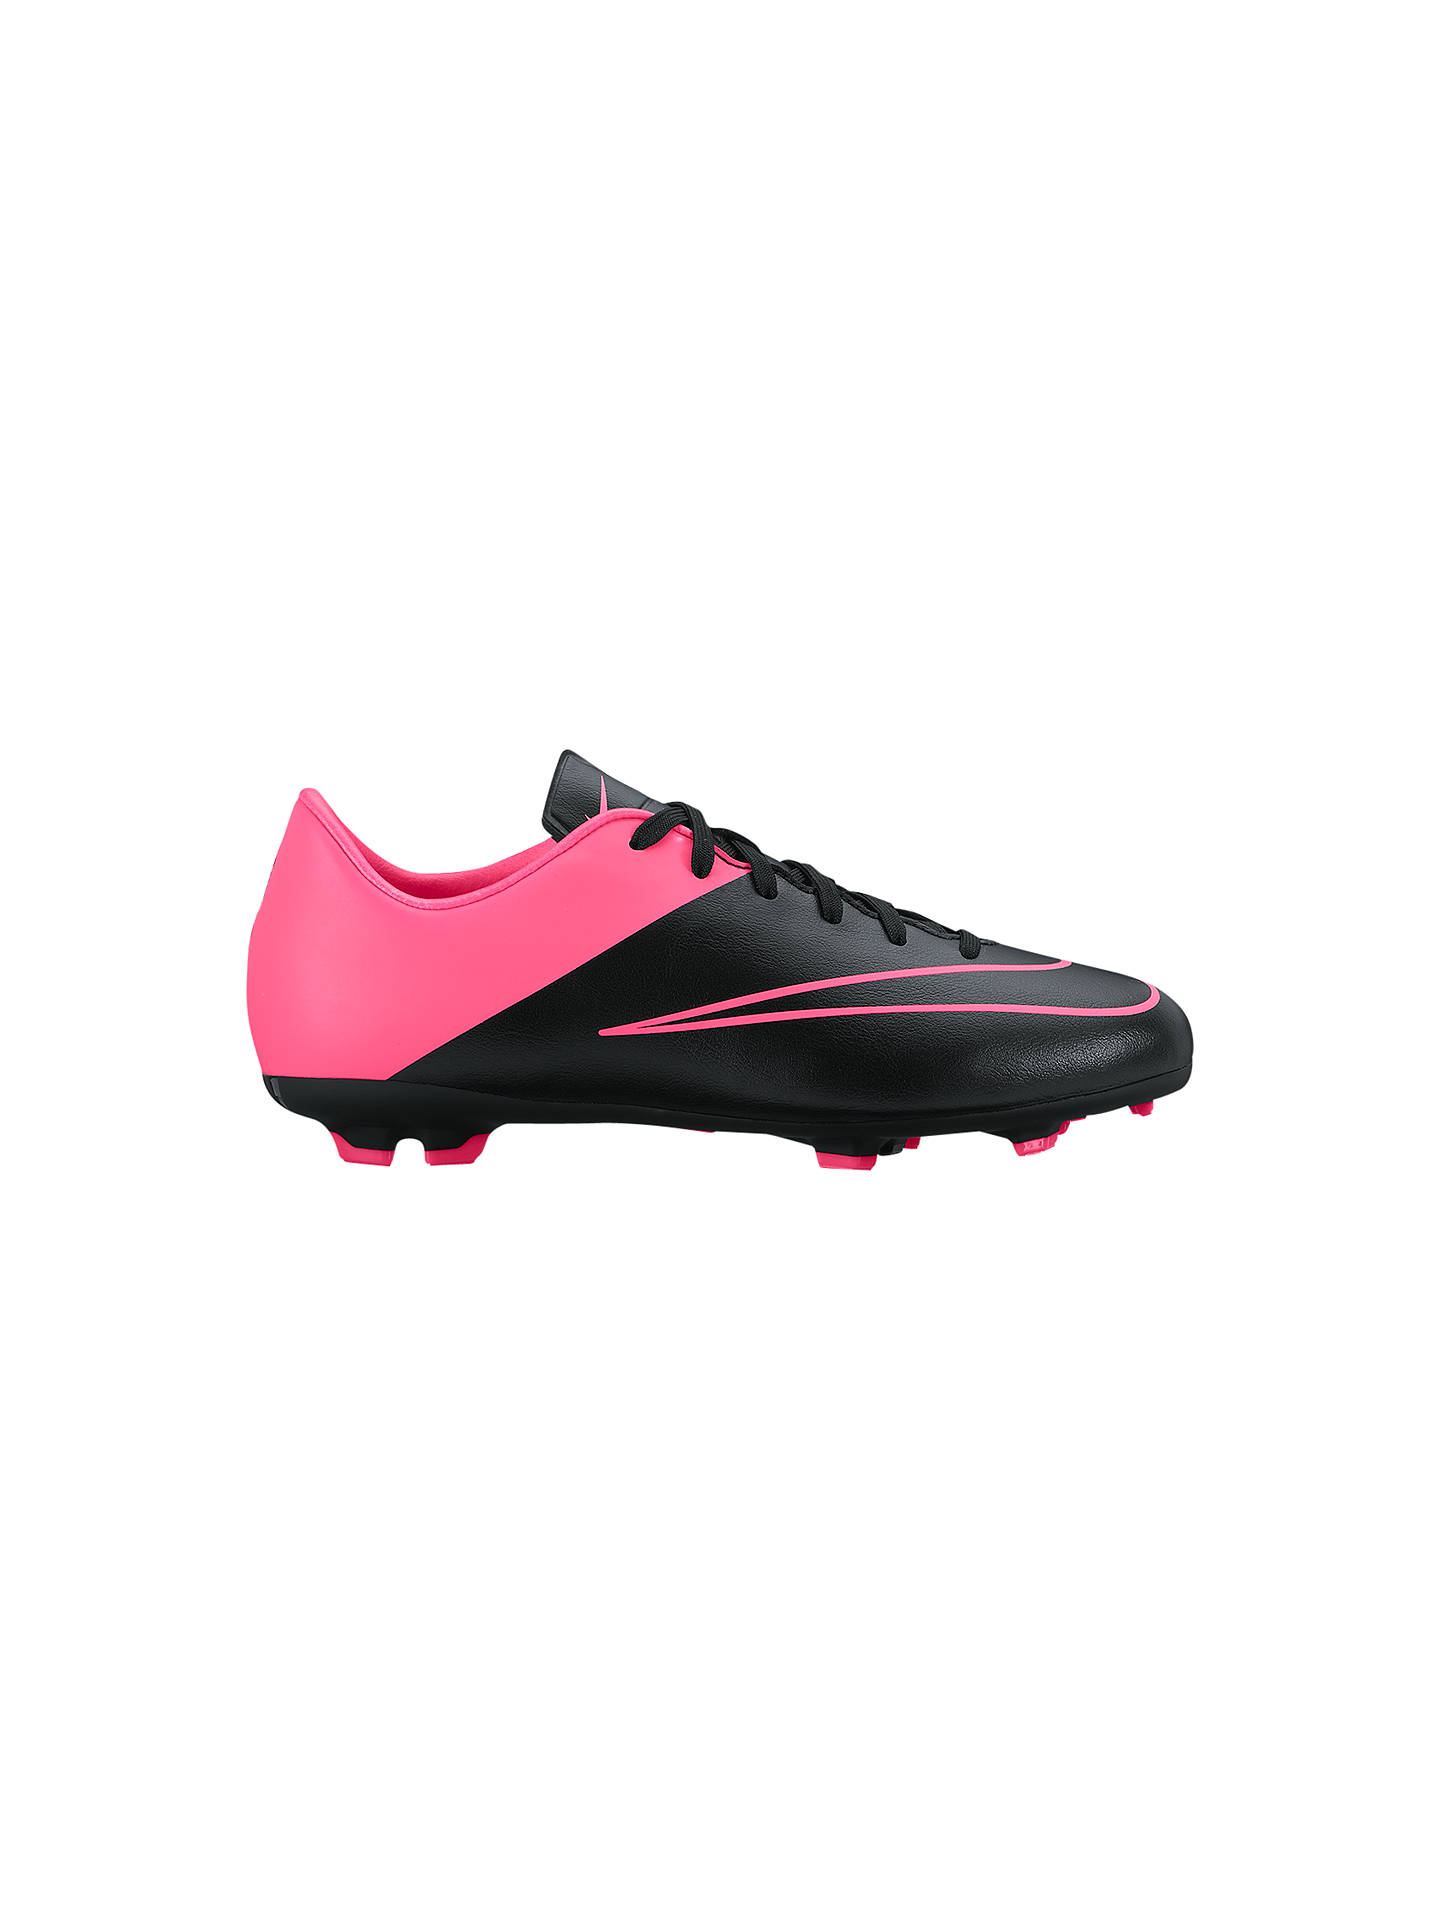 0fe4fe7a8a Buy Nike Children's Mercurial Victory V FG Football Boots, Black/Pink, 10  Jnr ...